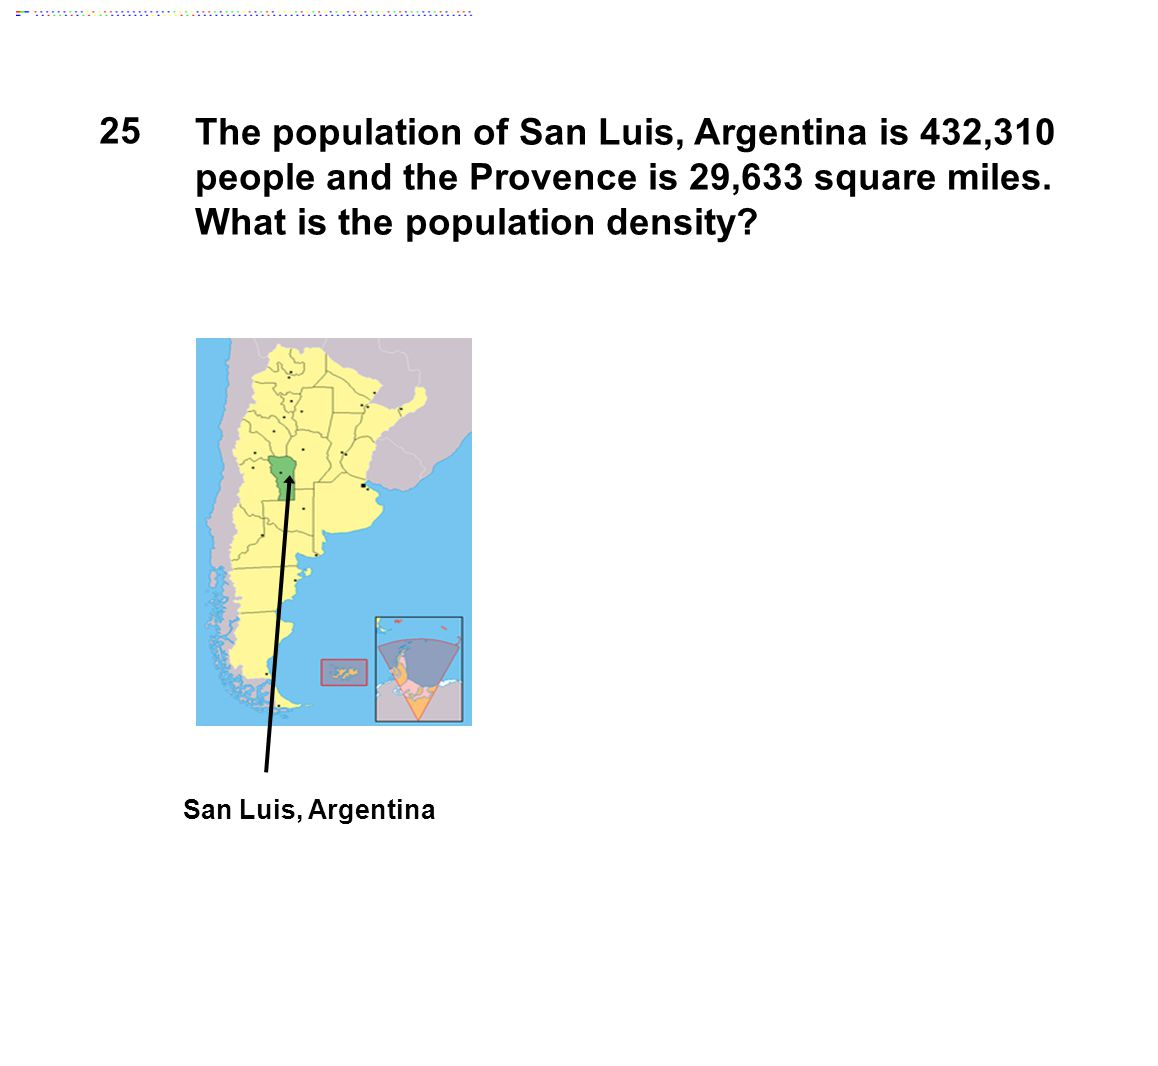 25 The population of San Luis, Argentina is 432,310 people and the Provence is 29,633 square miles. What is the population density